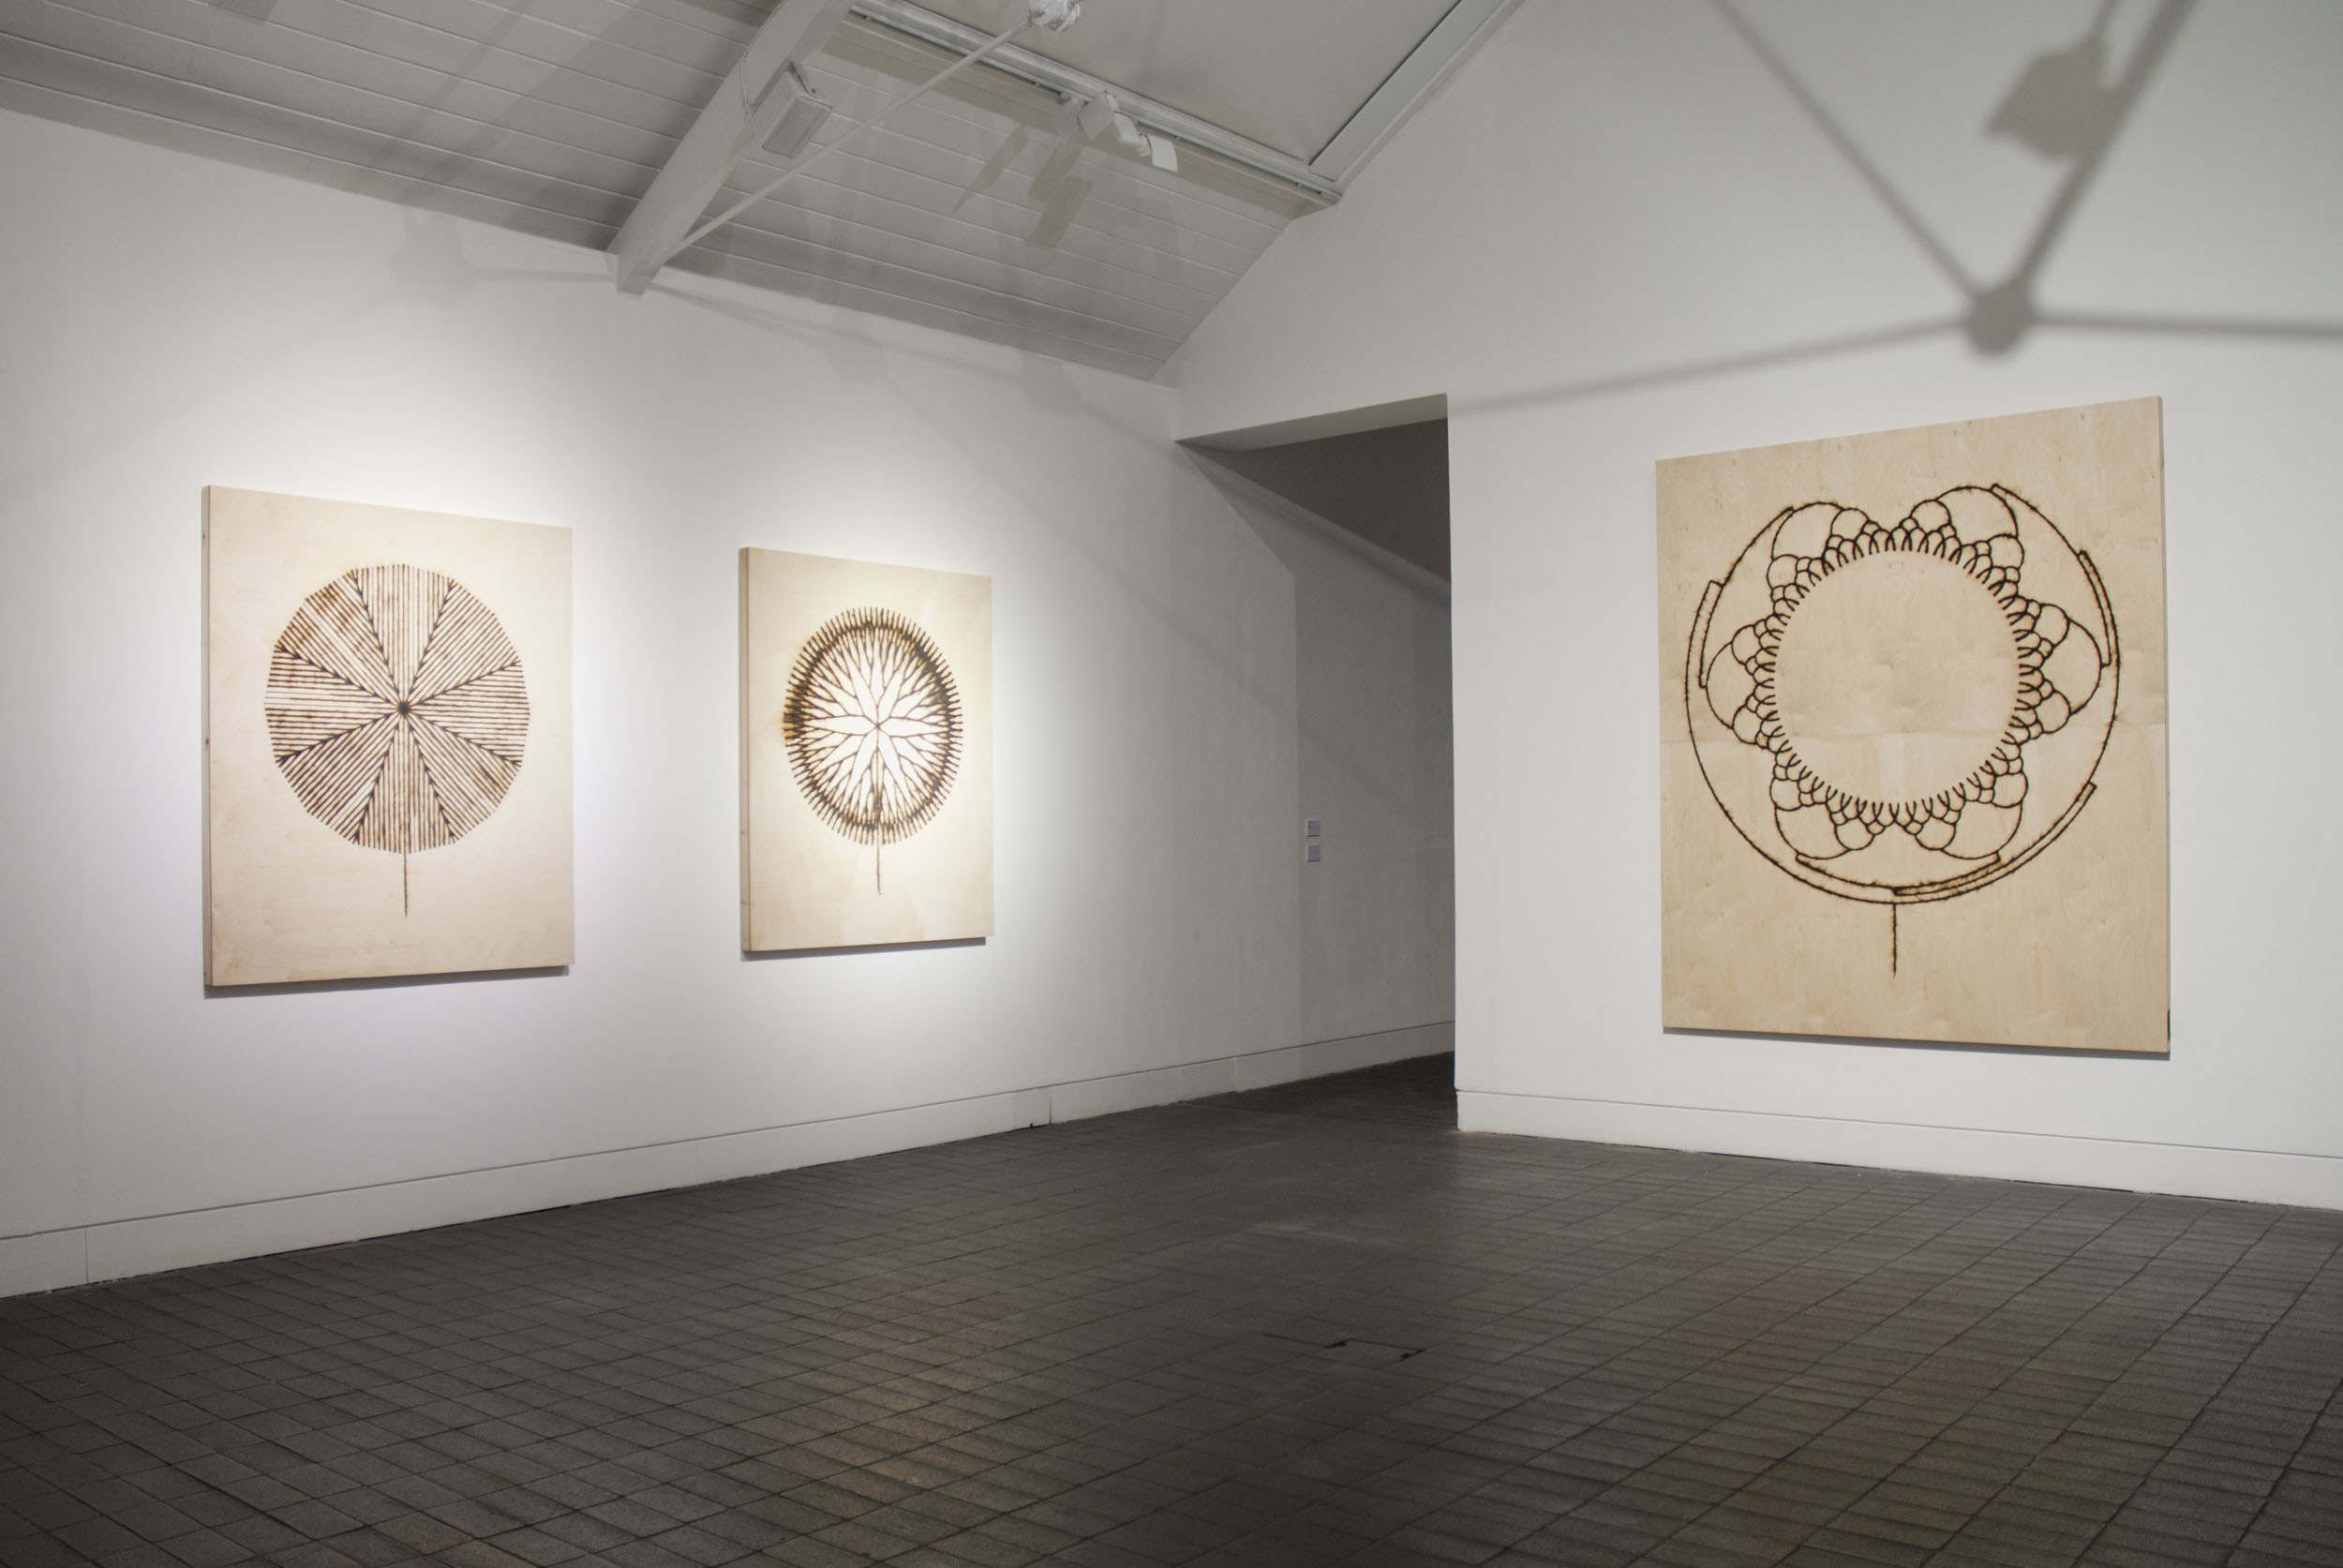 3 Fire Drawings on display at the Jerwood gallery